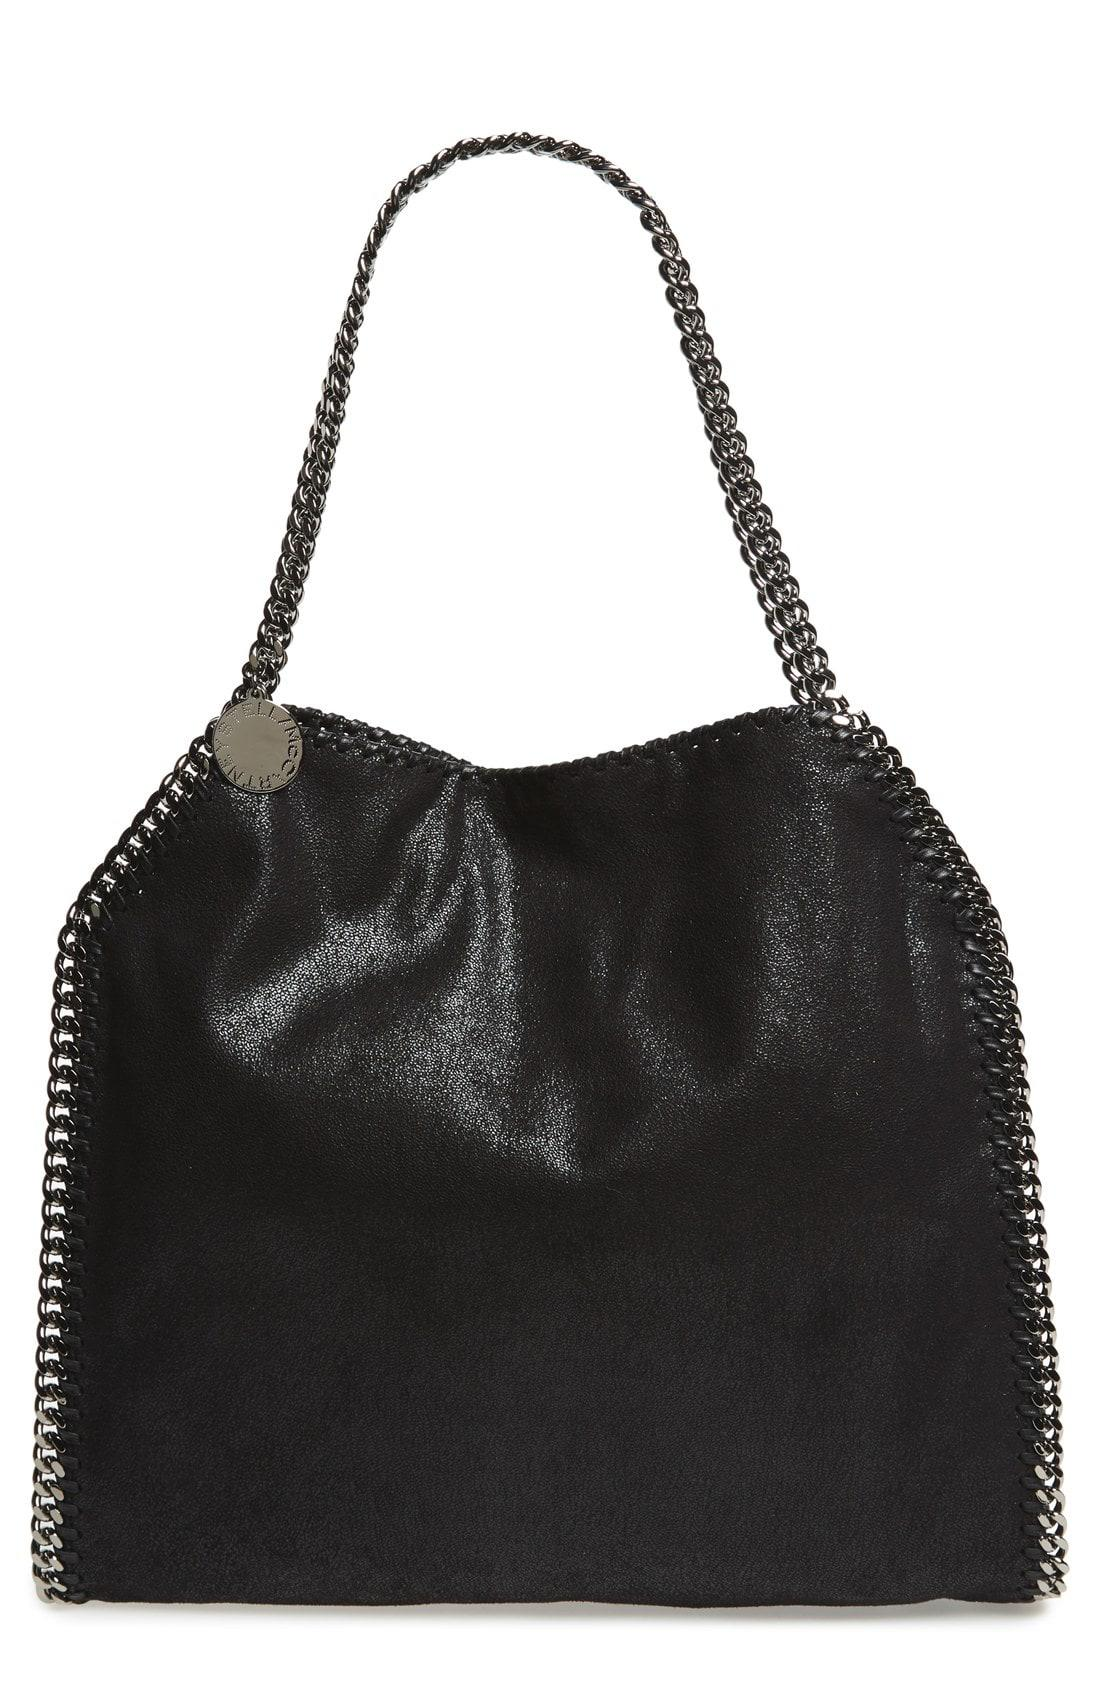 a49db89d4d Stella McCartney. Women s Black  small Falabella - Shaggy Deer  Faux  Leather Tote -